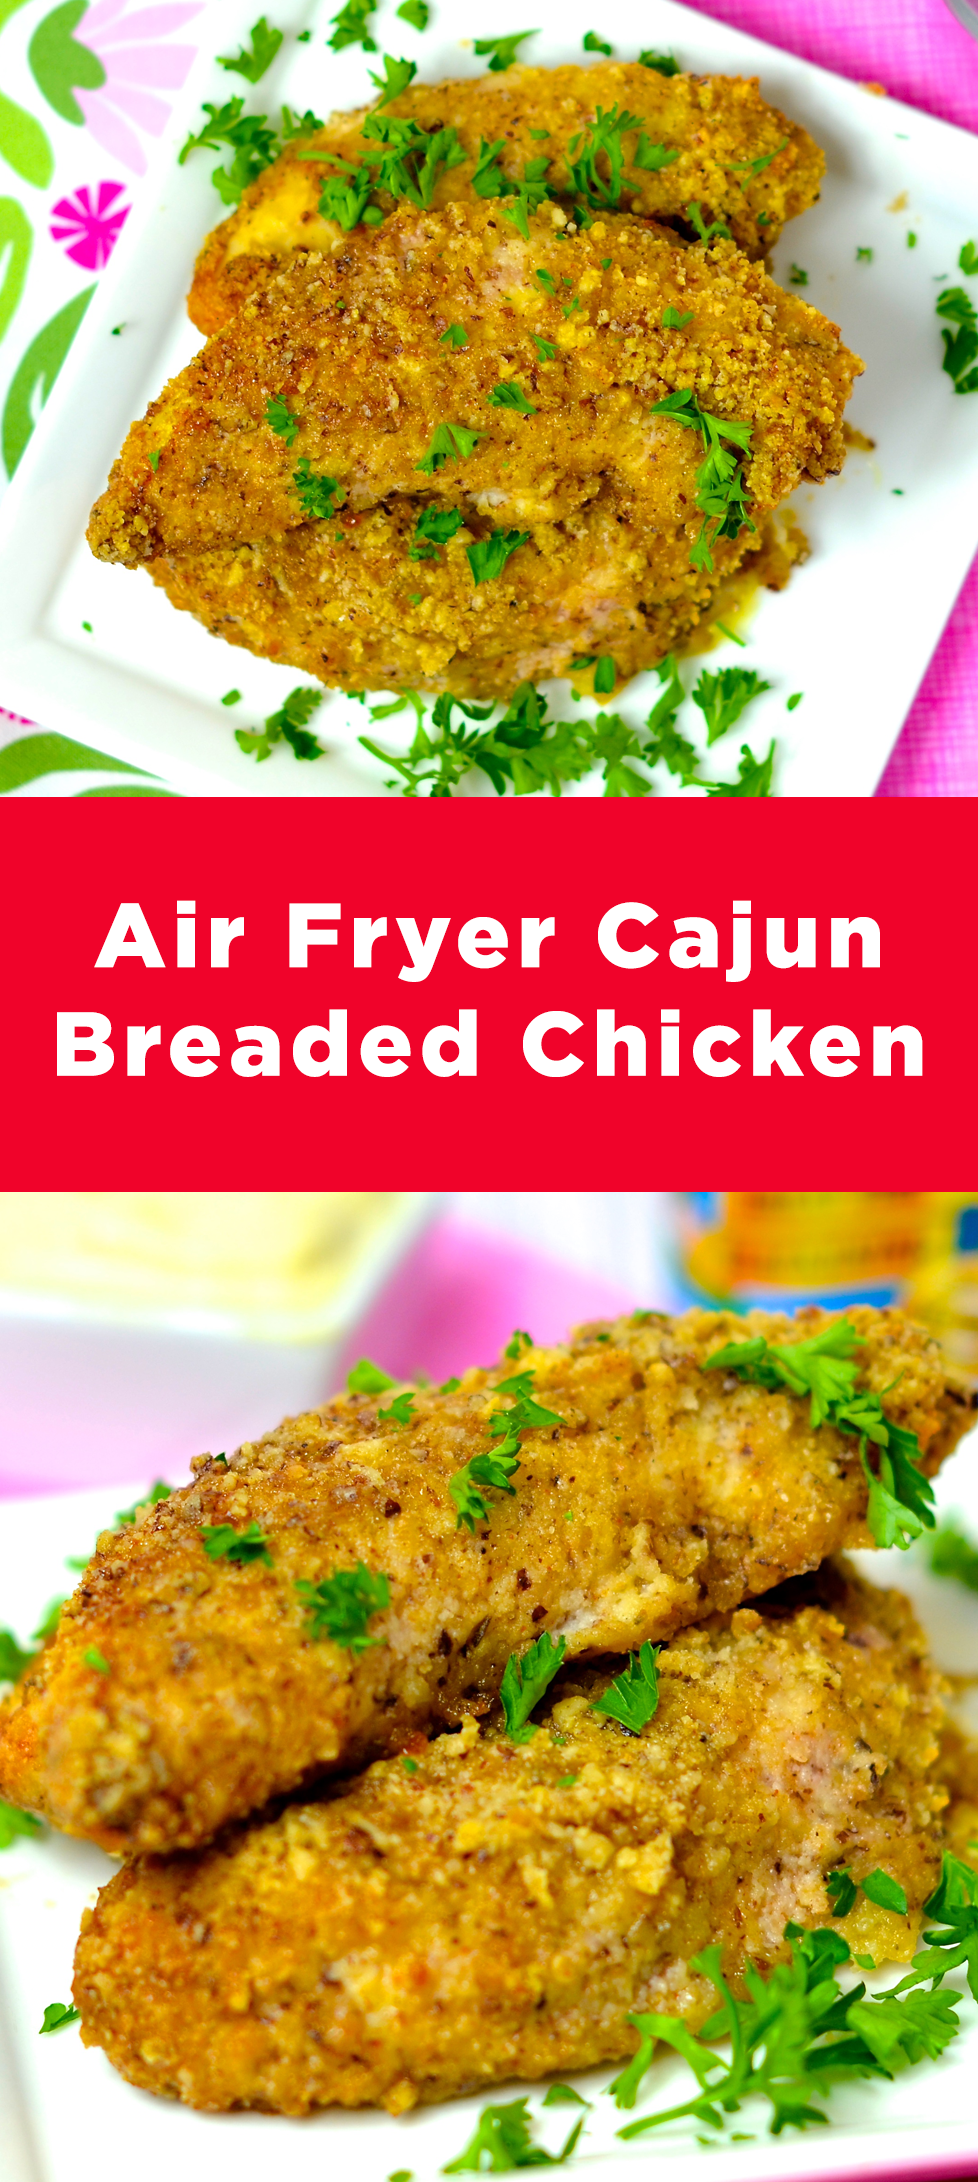 Air Fryer Cajun Breaded Chicken